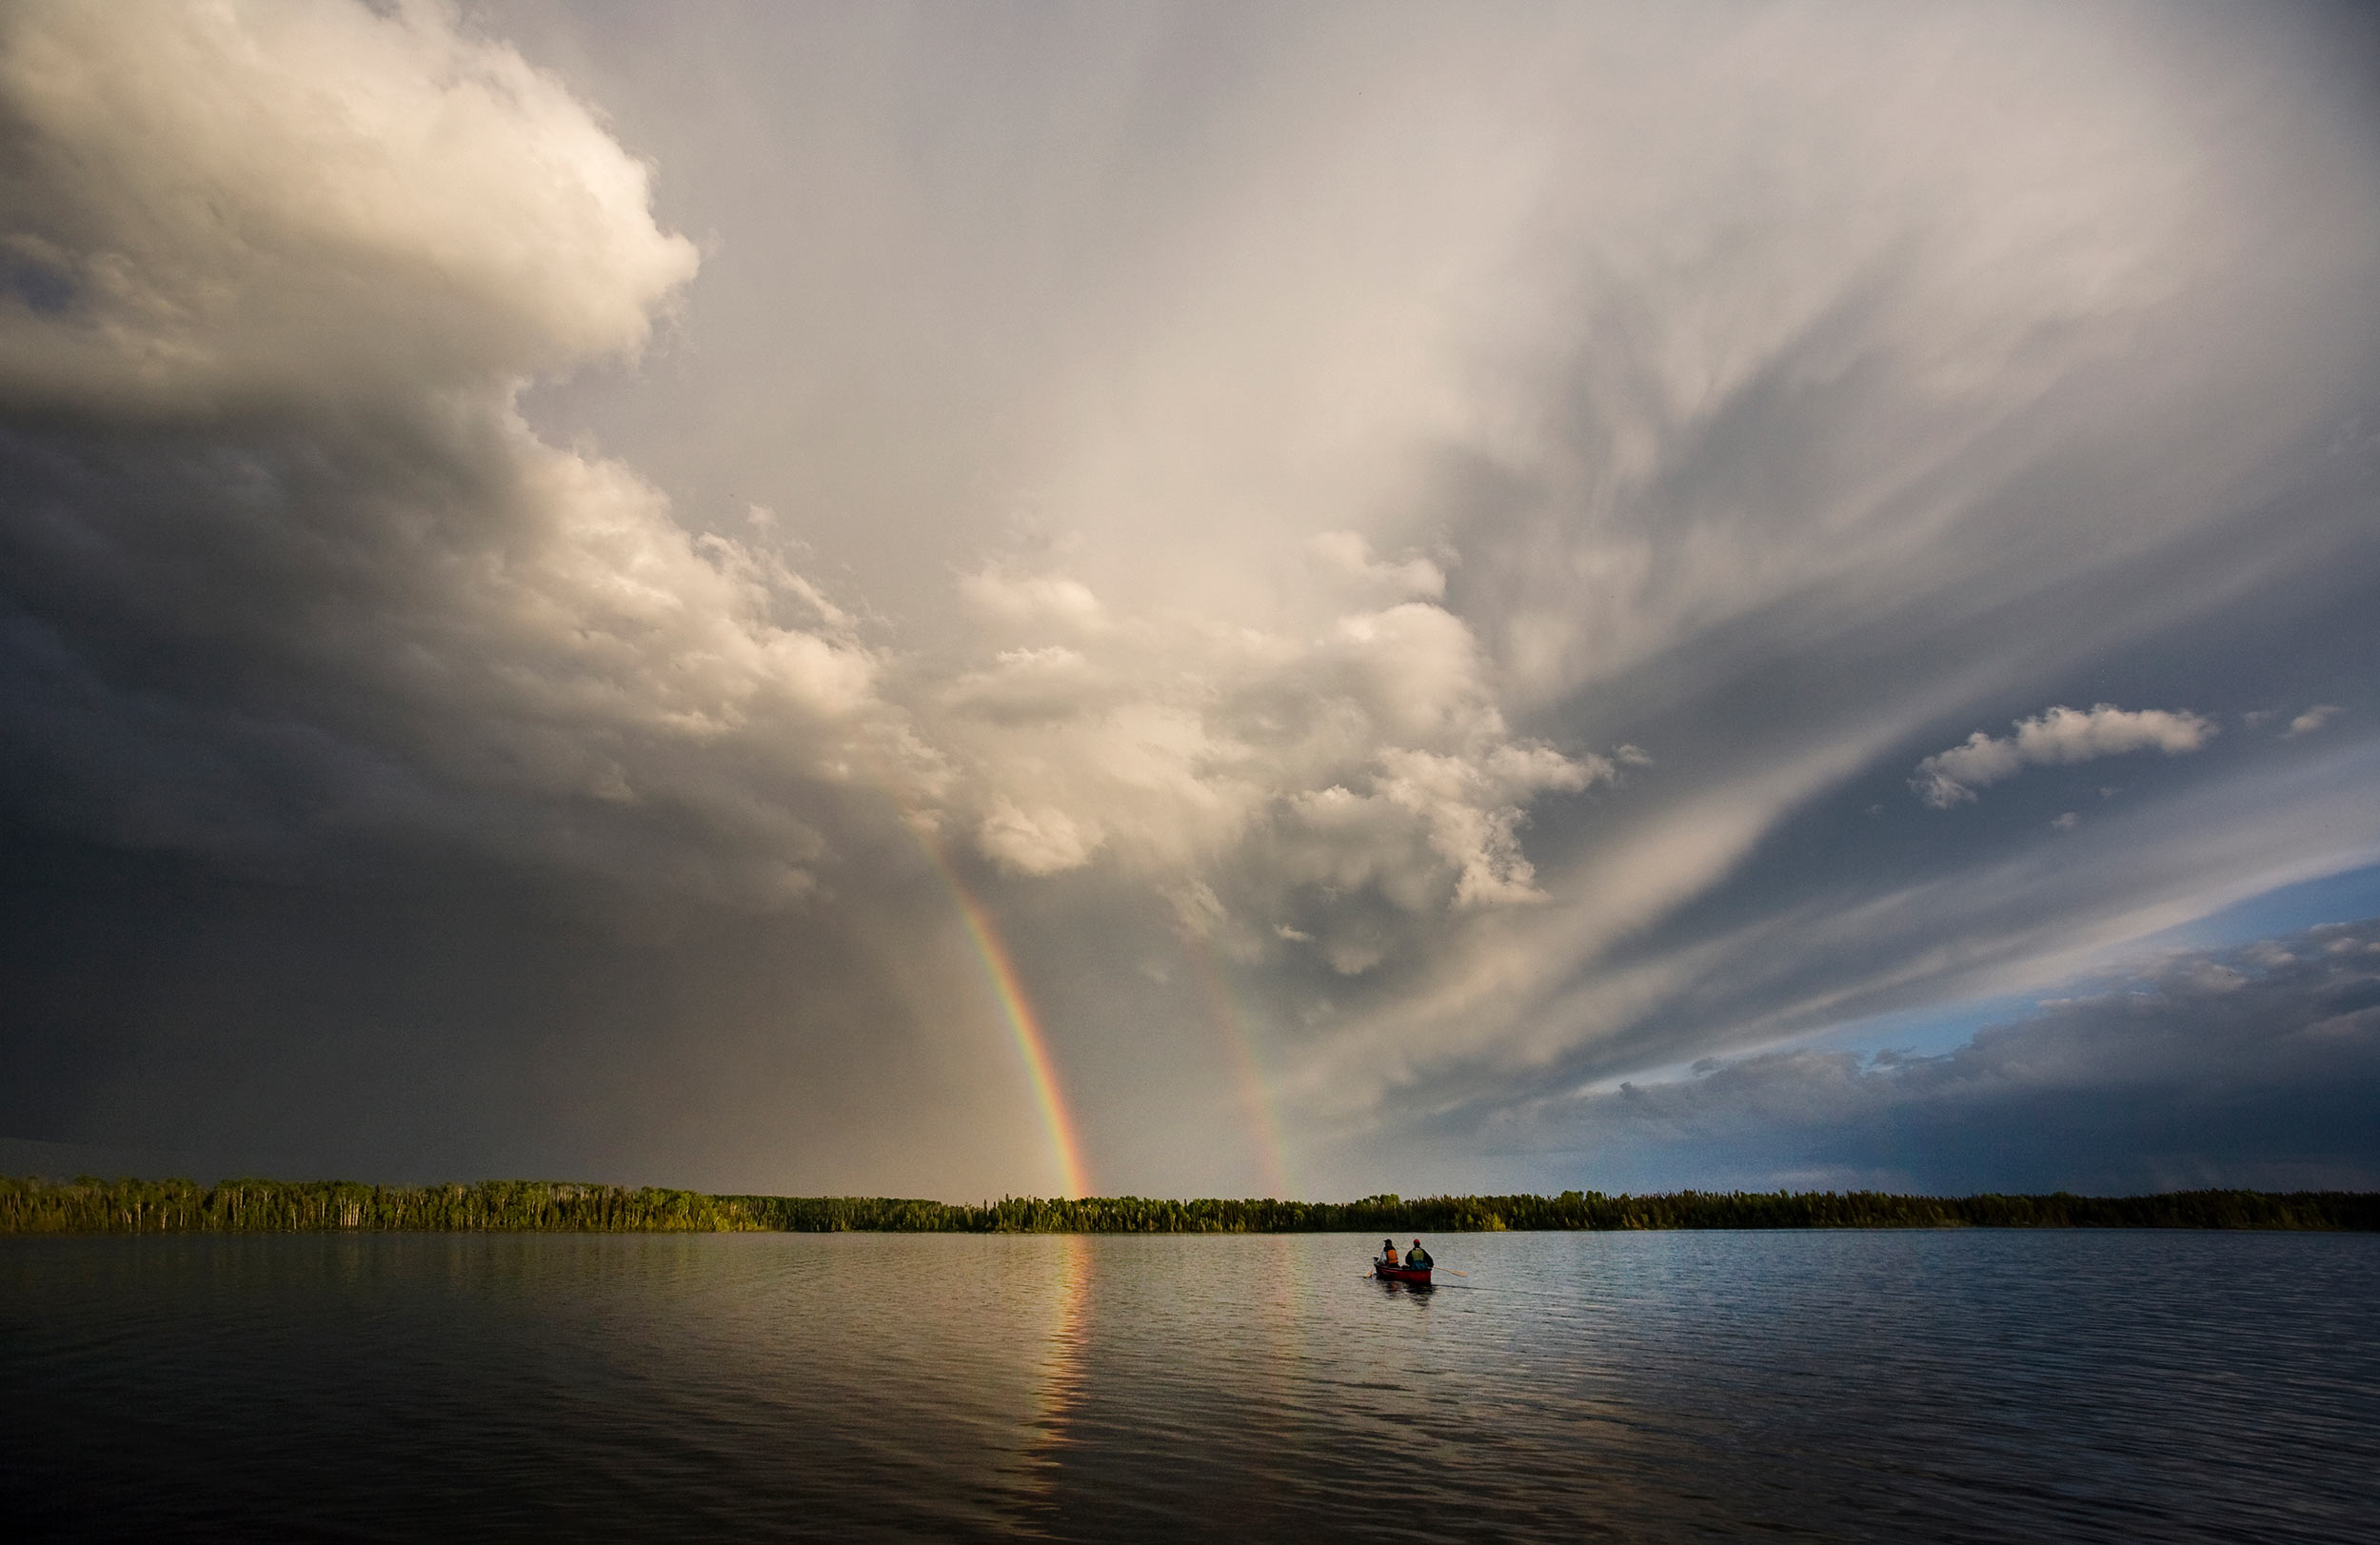 Paddling-to-the-rainbow_two-paddlers